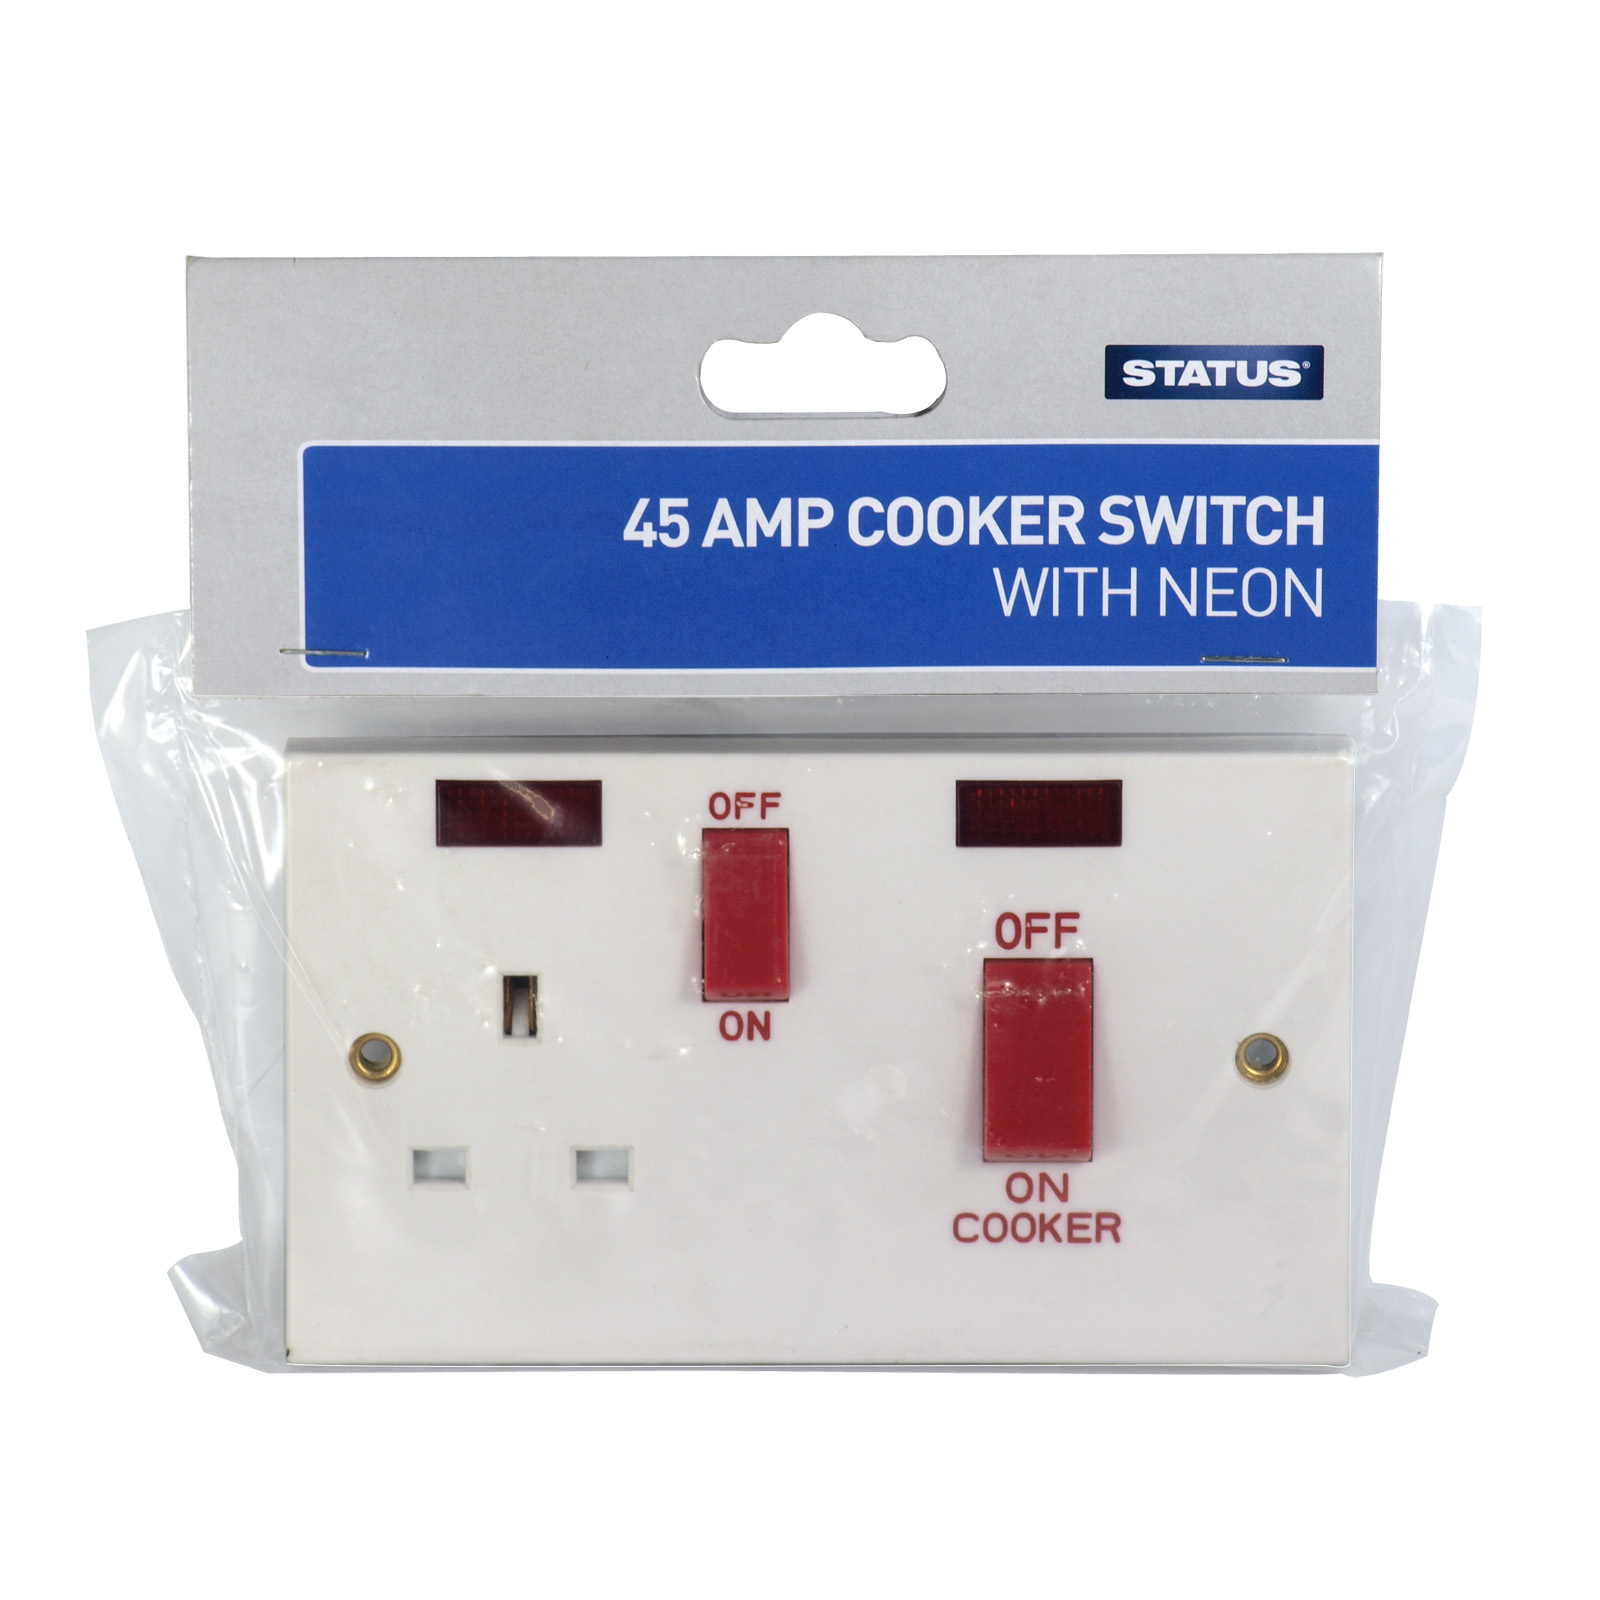 STATUS COOKER SWITCH 1GANGX45AMP